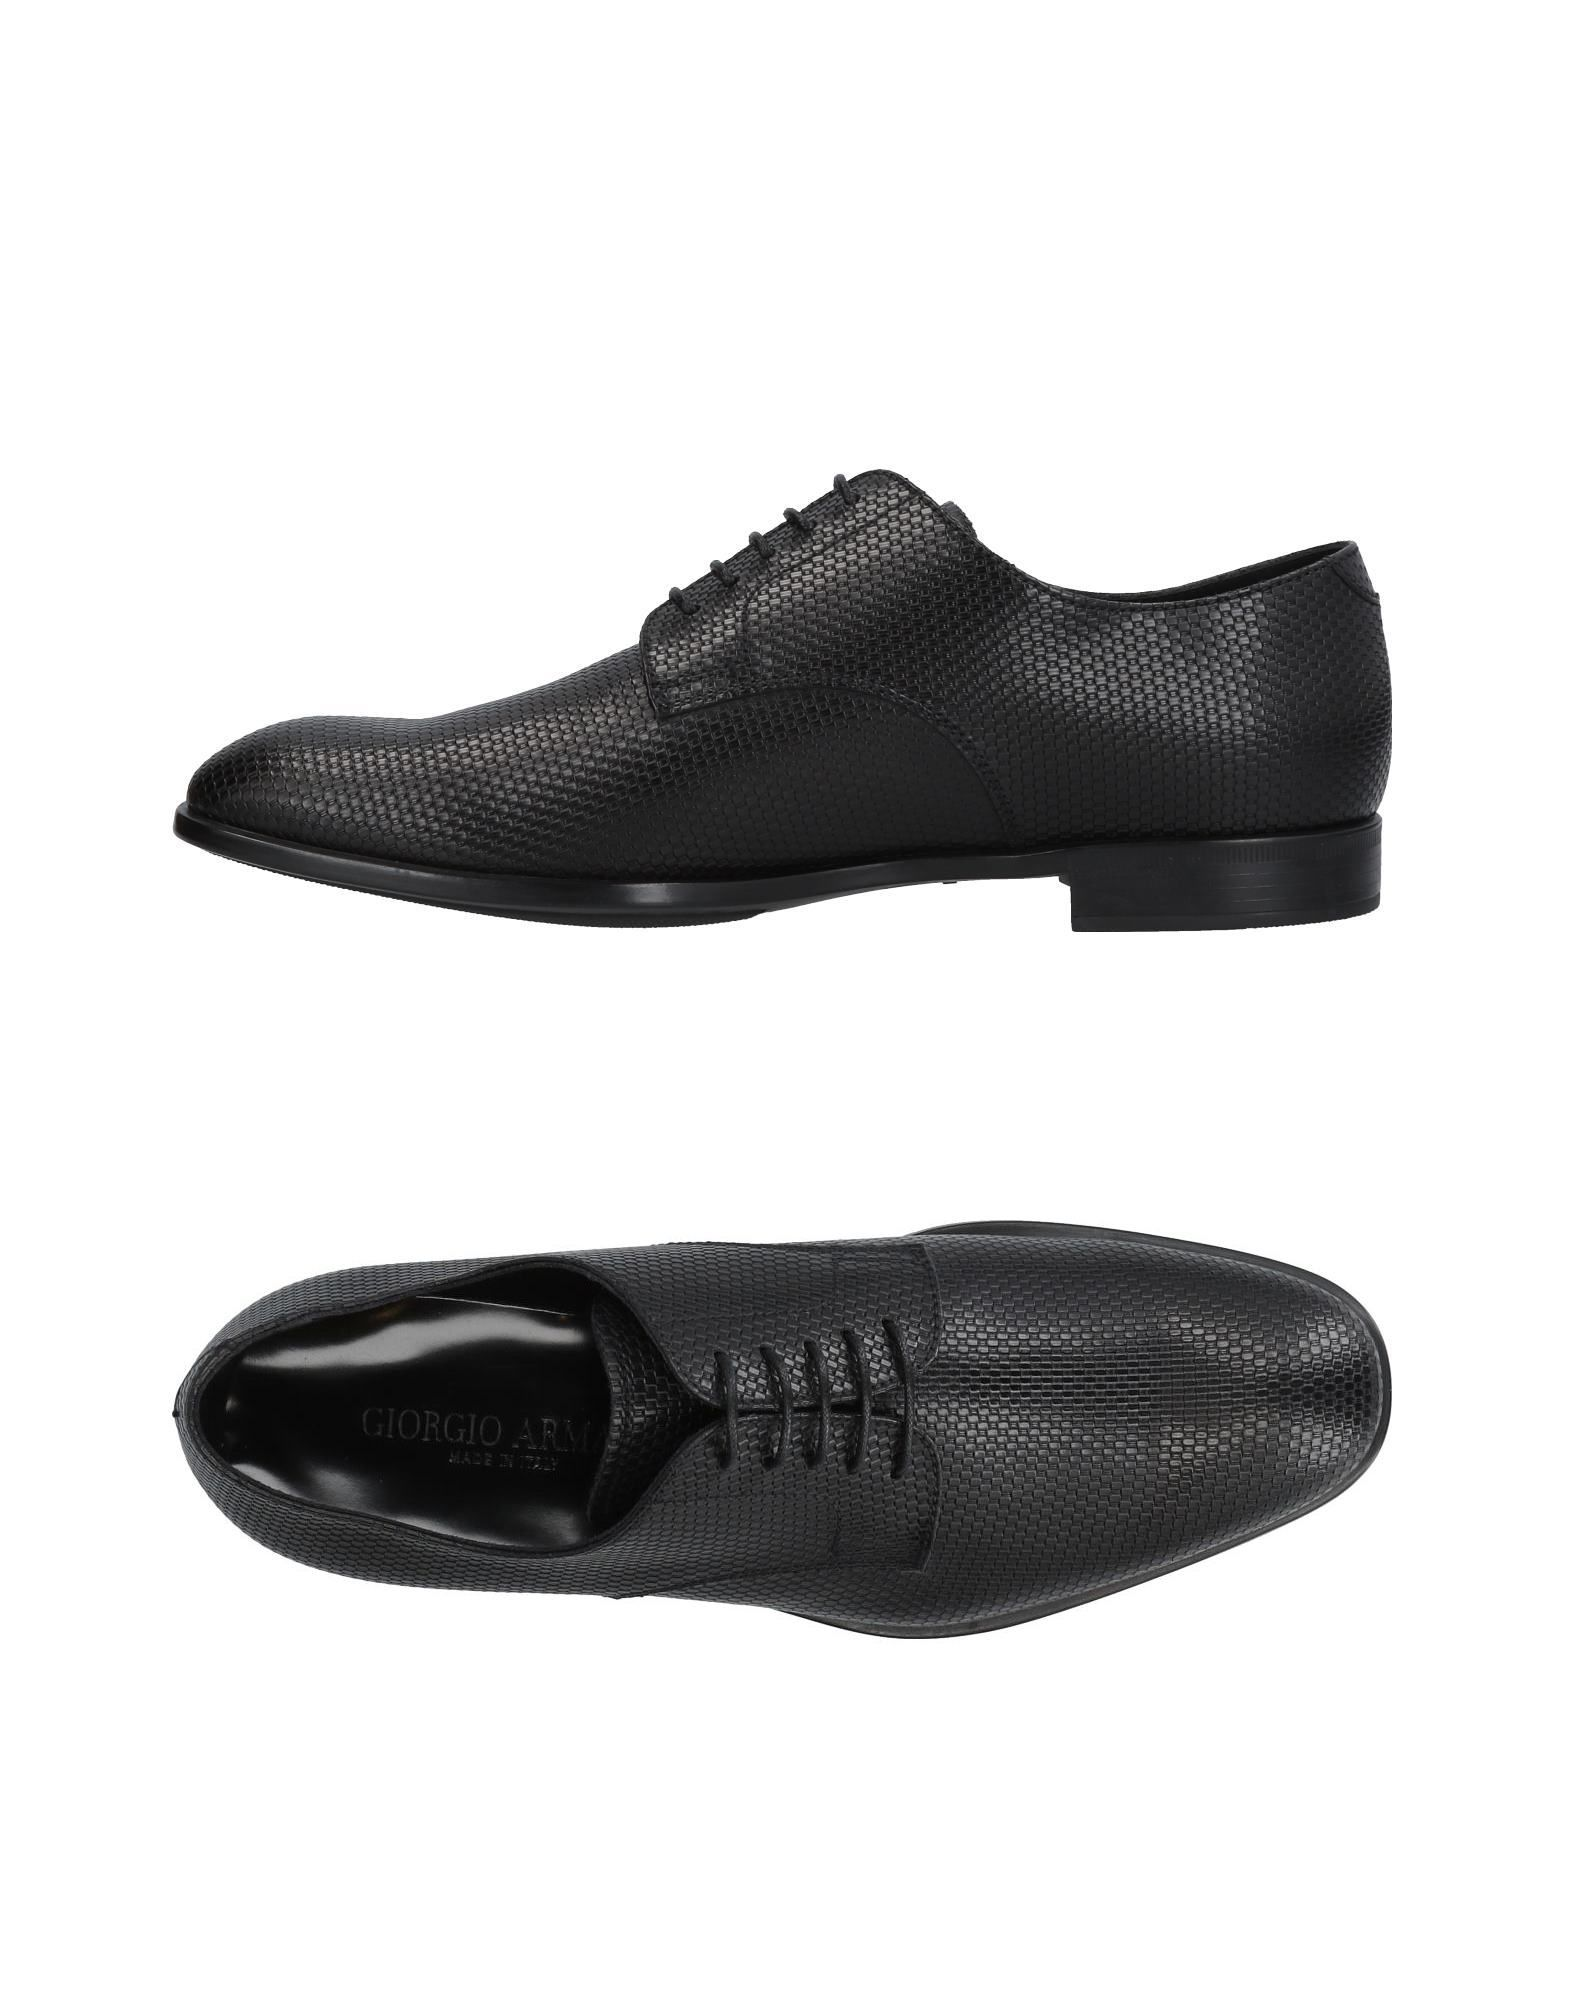 Chaussures À Lacets Giorgio Armani Homme - Chaussures À Lacets Giorgio Armani sur